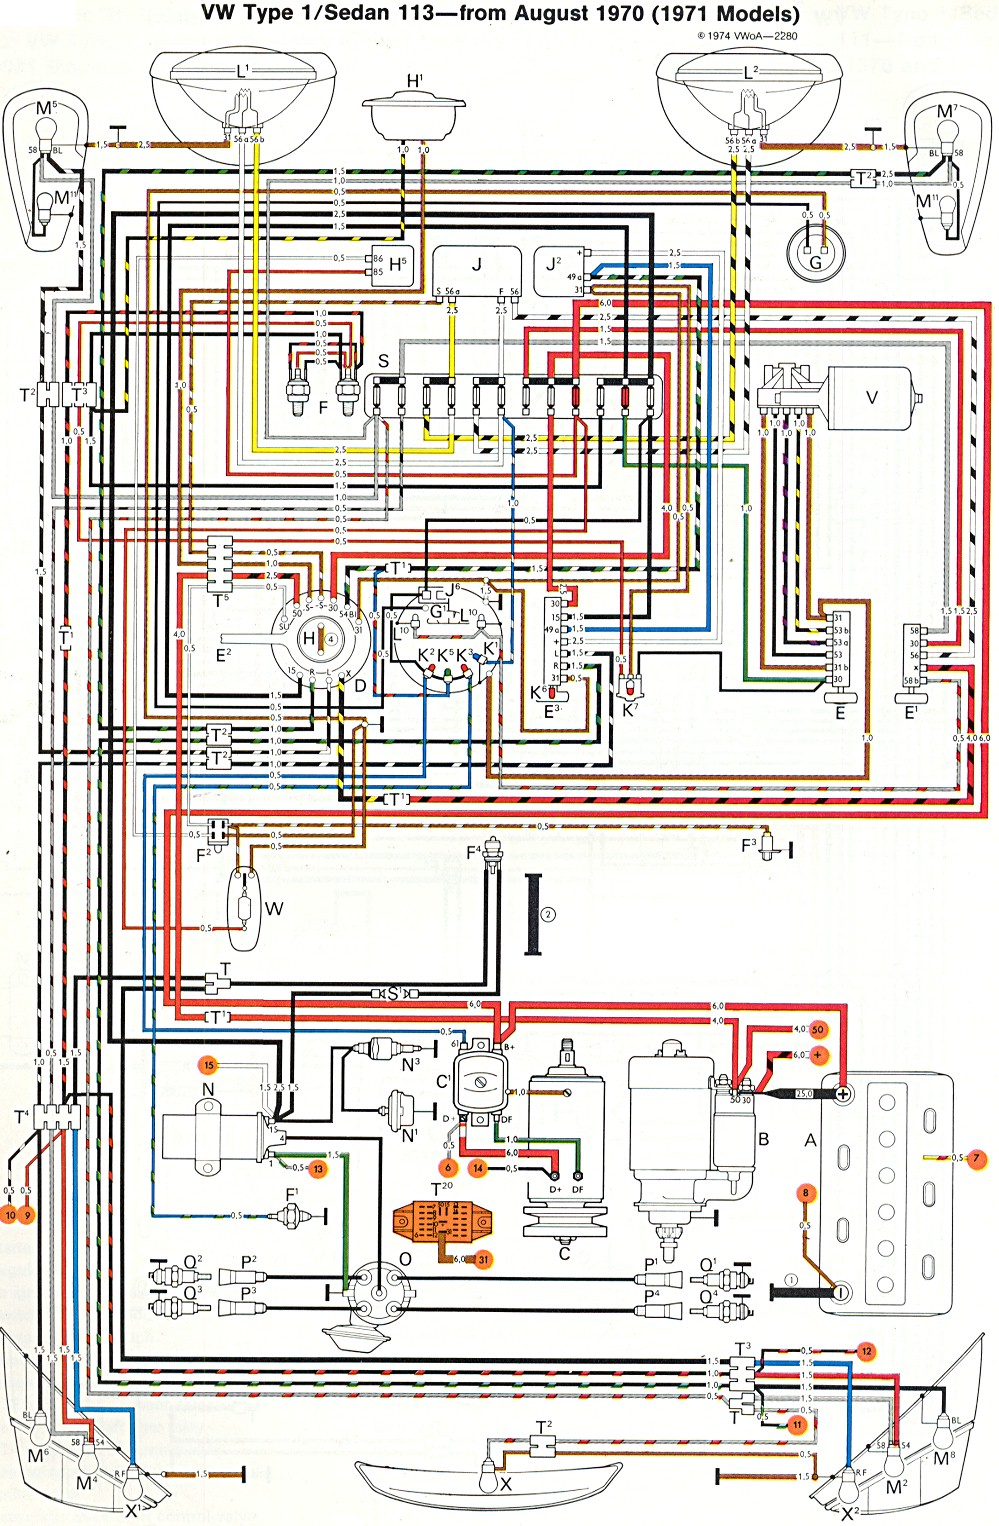 bug_super_71 2003 vw beetle wiring harness 2002 vw beetle alternator harness 2000 vw wiring diagrams at eliteediting.co